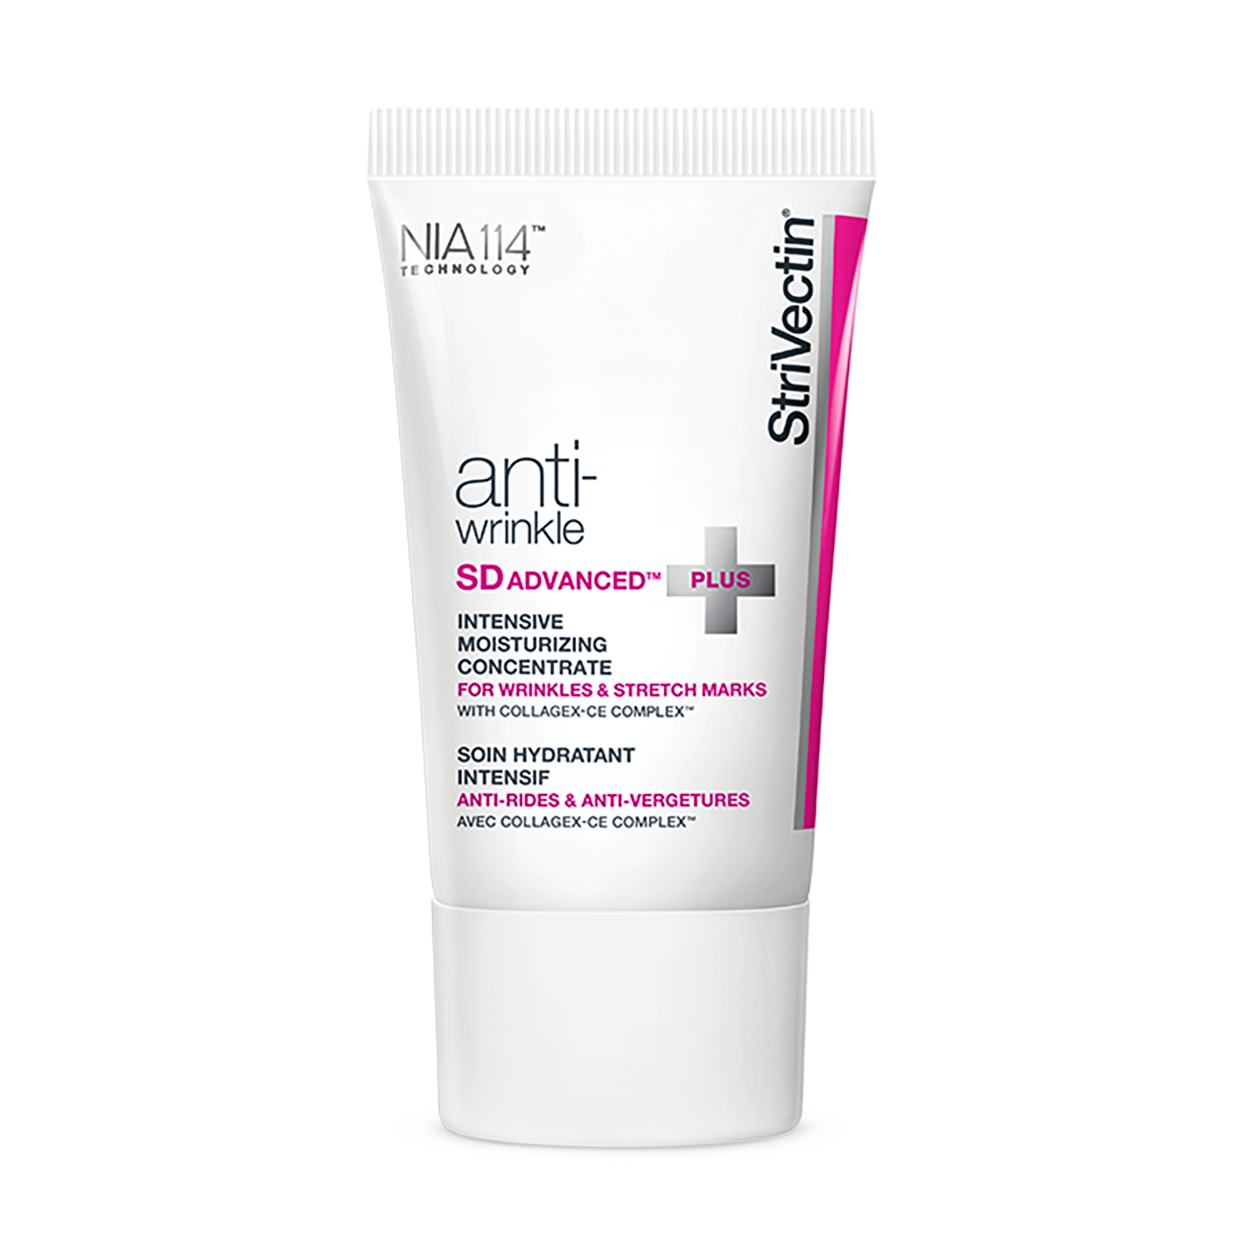 StriVectin anti-wrinkle face cream with peptides